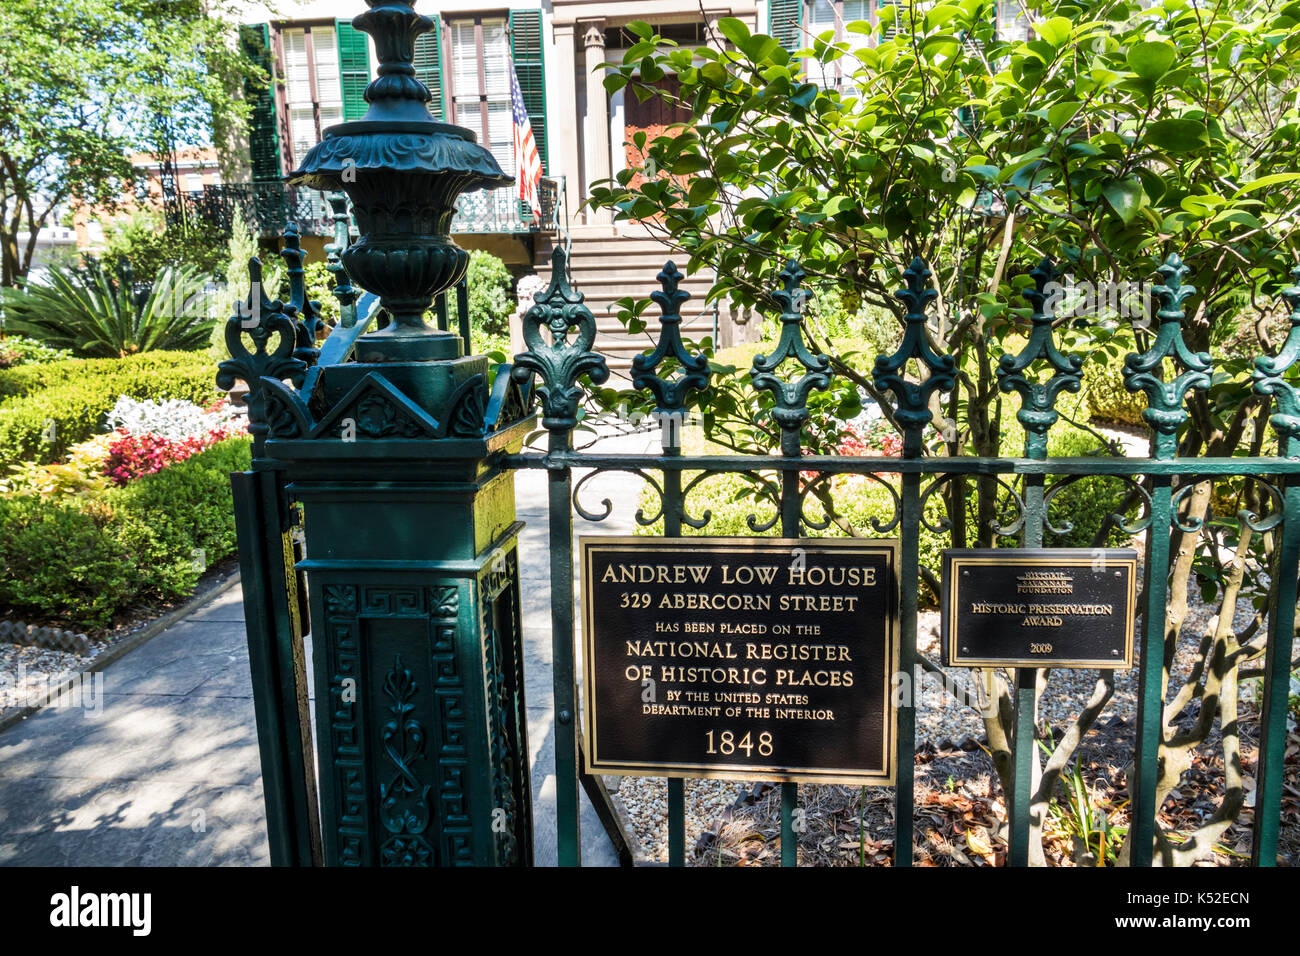 Savannah Georgia historic district Lafayette Square Andrew Low House museum exterior garden gate - Stock Image